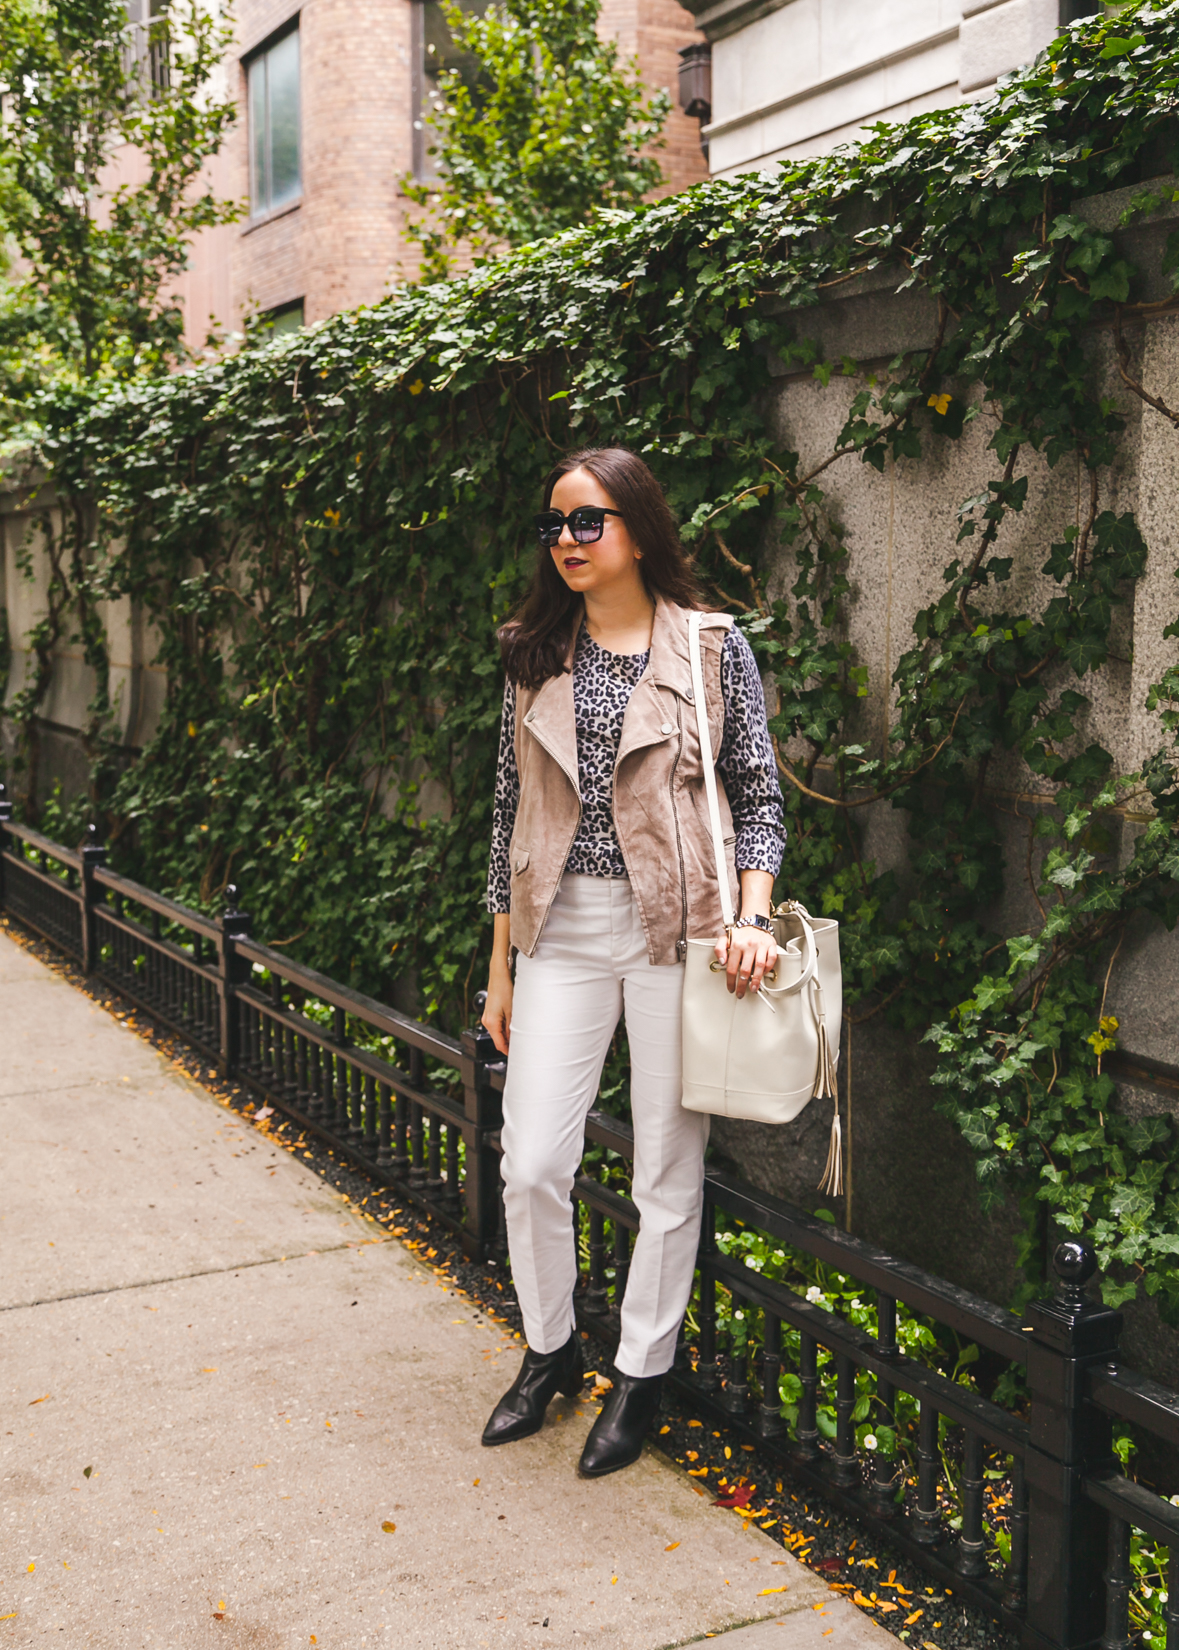 Yana Frigelis of NoMad Luxuries wearing a suede moto vest from TJ Maxx and a cashmere leopard sweater for the Fall in Chicago